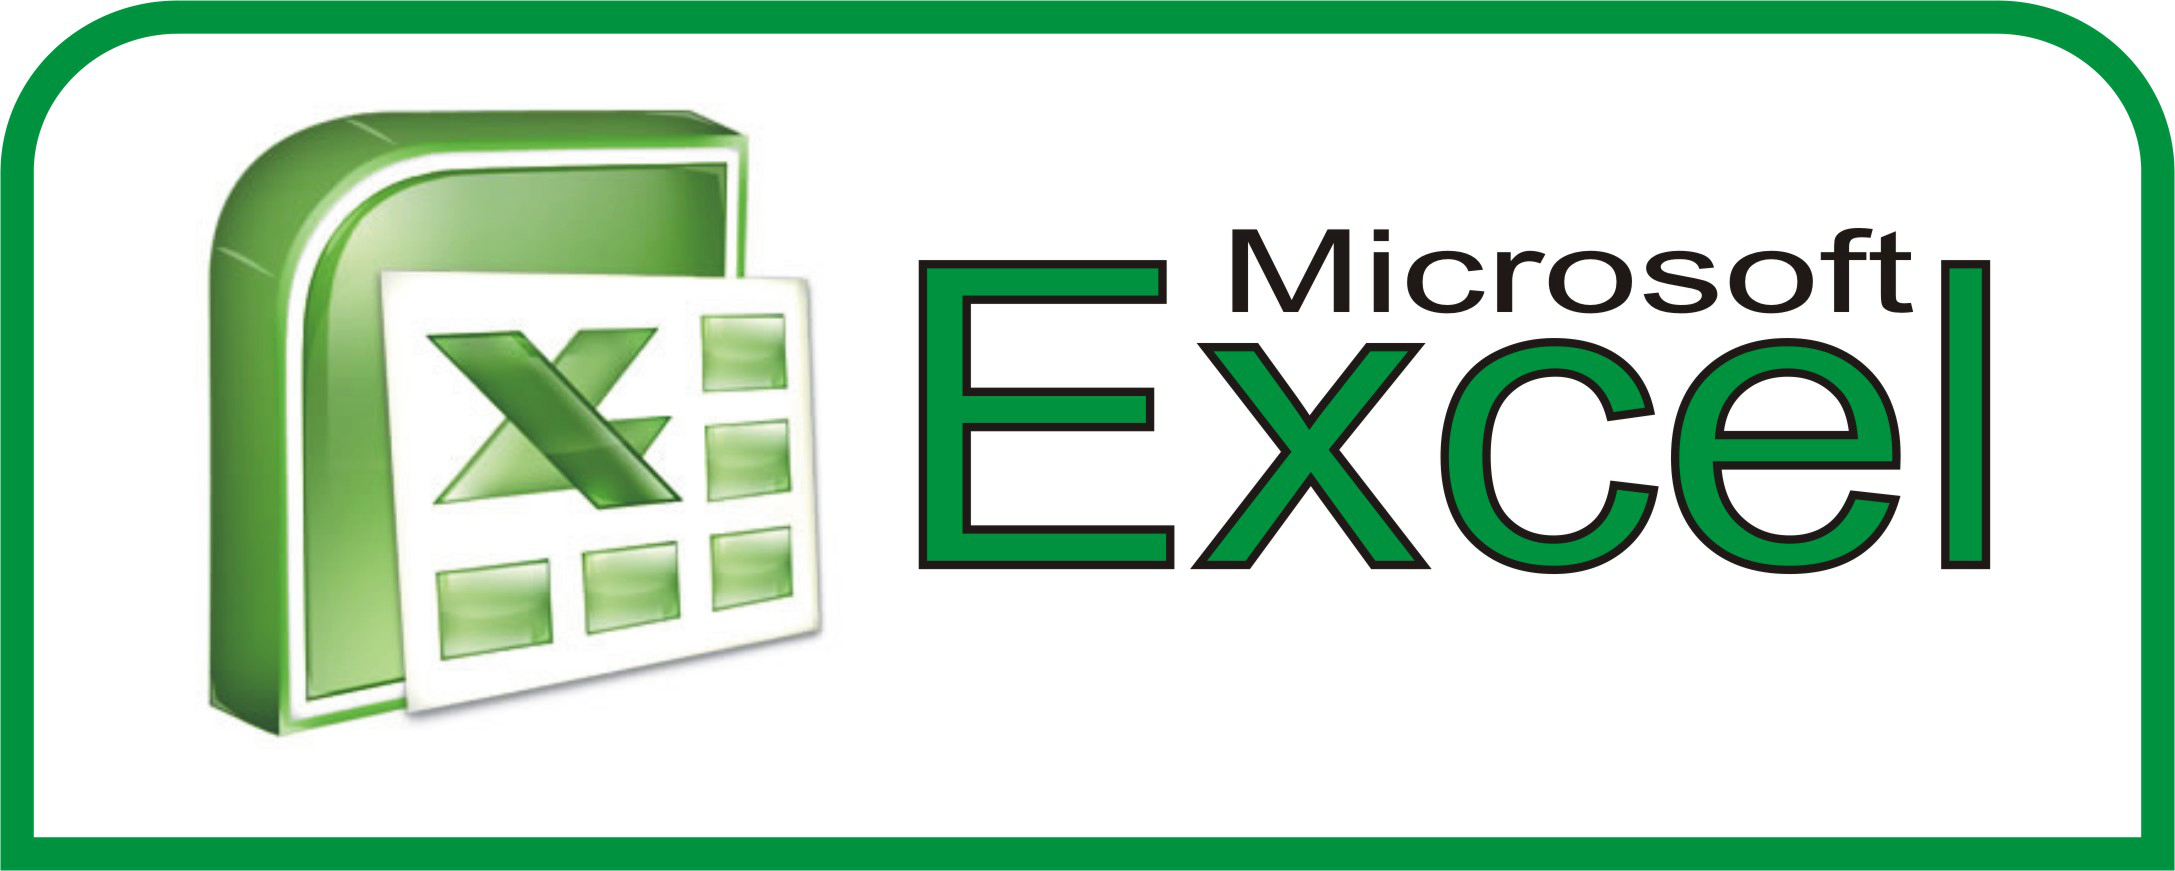 Ediblewildsus  Mesmerizing  Excel Shortcuts You Probably Didnt Know About  Techdissected With Inspiring Split Column Excel Besides Excel Bullet List Furthermore Left Excel Formula With Endearing Excel Formula Time Difference Also Excel Roundup To Nearest  In Addition Calculating Mortgage Payments In Excel And Excel Printing Too Small As Well As Savings Calculator Excel Additionally How To Create An Organizational Chart In Excel From Techdissectedcom With Ediblewildsus  Inspiring  Excel Shortcuts You Probably Didnt Know About  Techdissected With Endearing Split Column Excel Besides Excel Bullet List Furthermore Left Excel Formula And Mesmerizing Excel Formula Time Difference Also Excel Roundup To Nearest  In Addition Calculating Mortgage Payments In Excel From Techdissectedcom